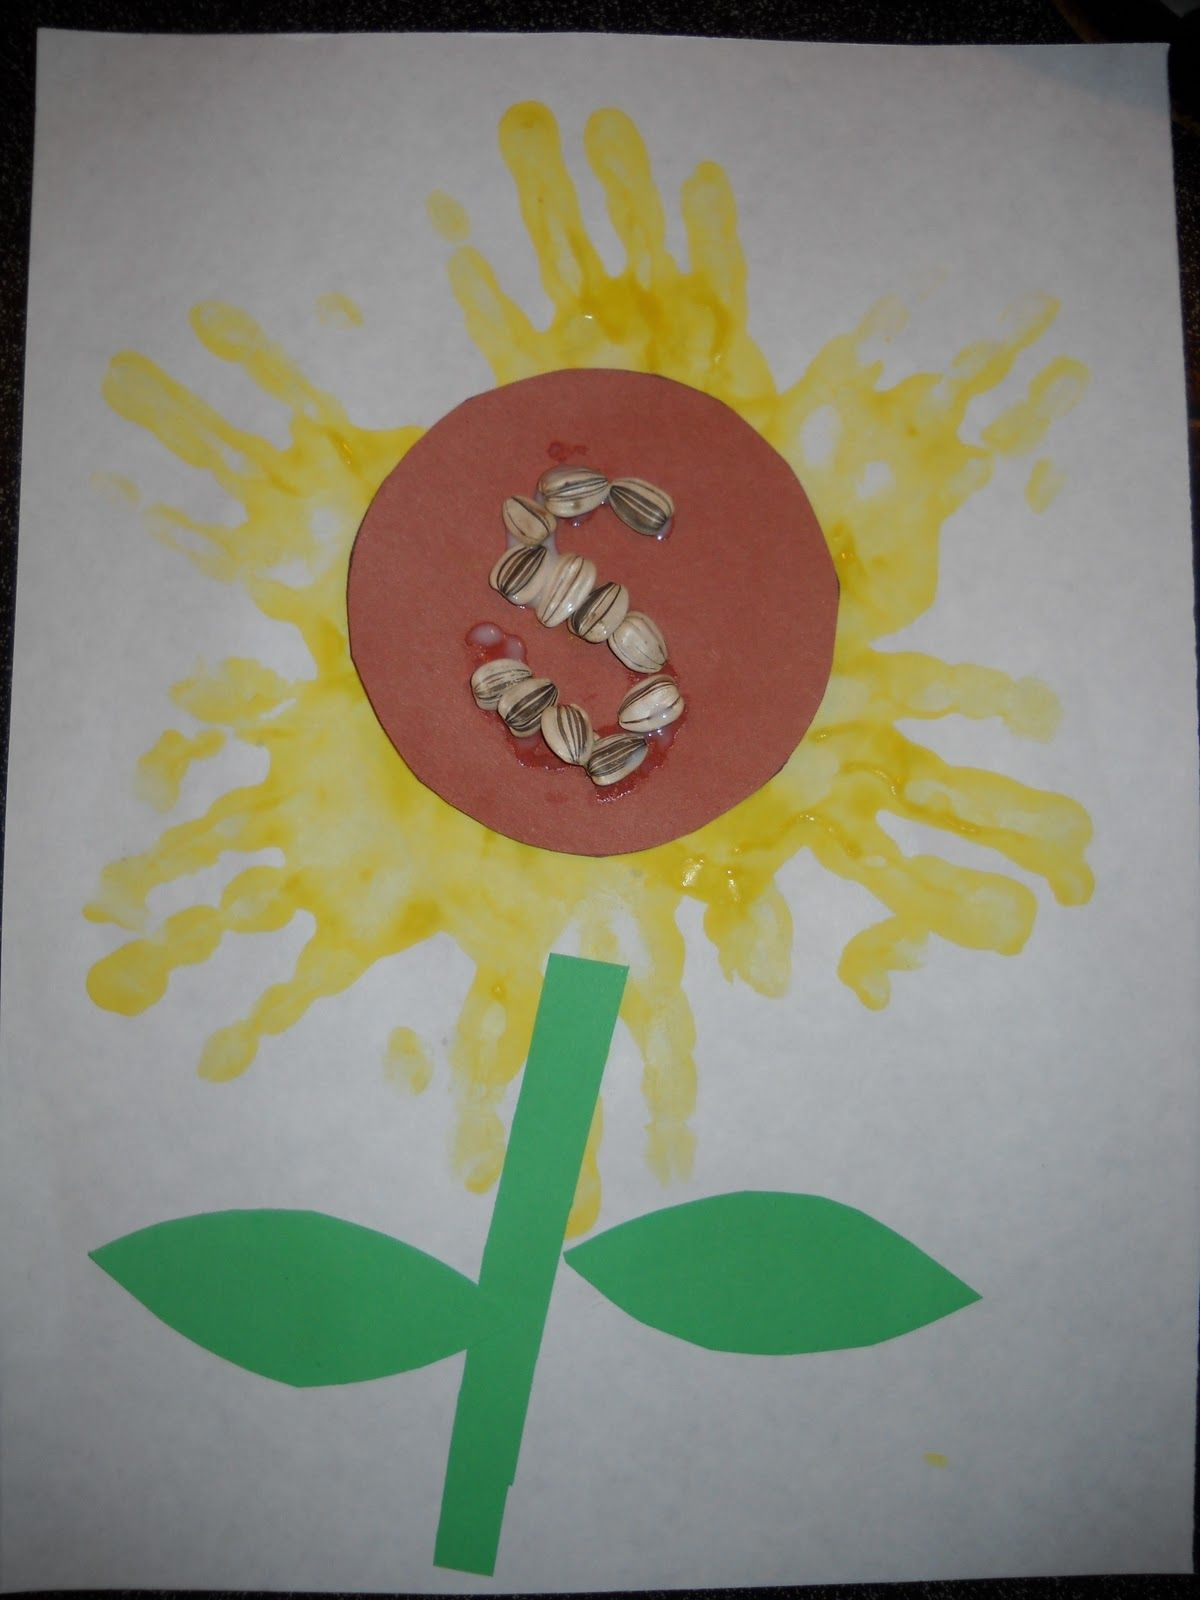 Kansas Day Just Put Seeds In Middle Make Say Ks Or